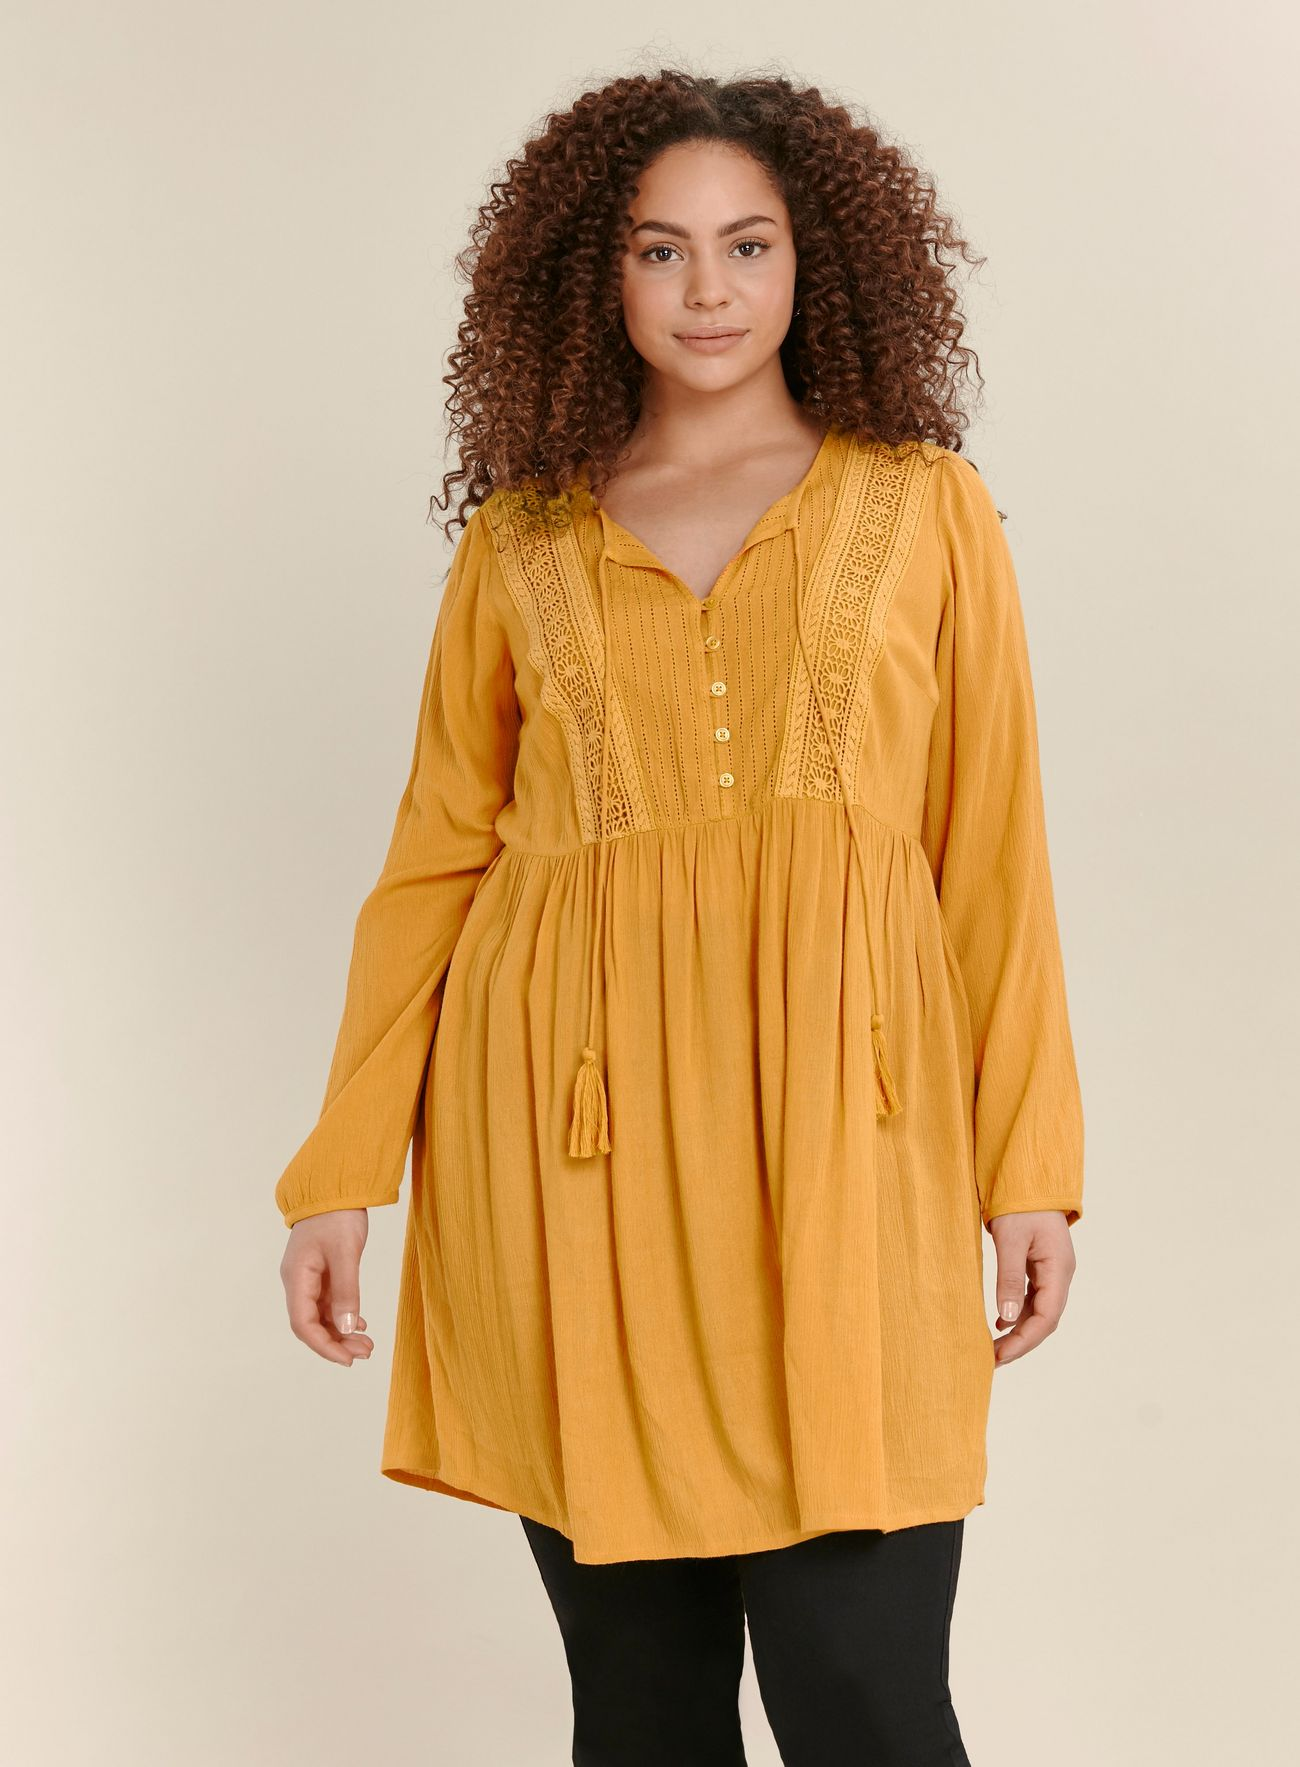 SL1461 Ex Chainstore Ochre Lace Detail Tunic Top x12